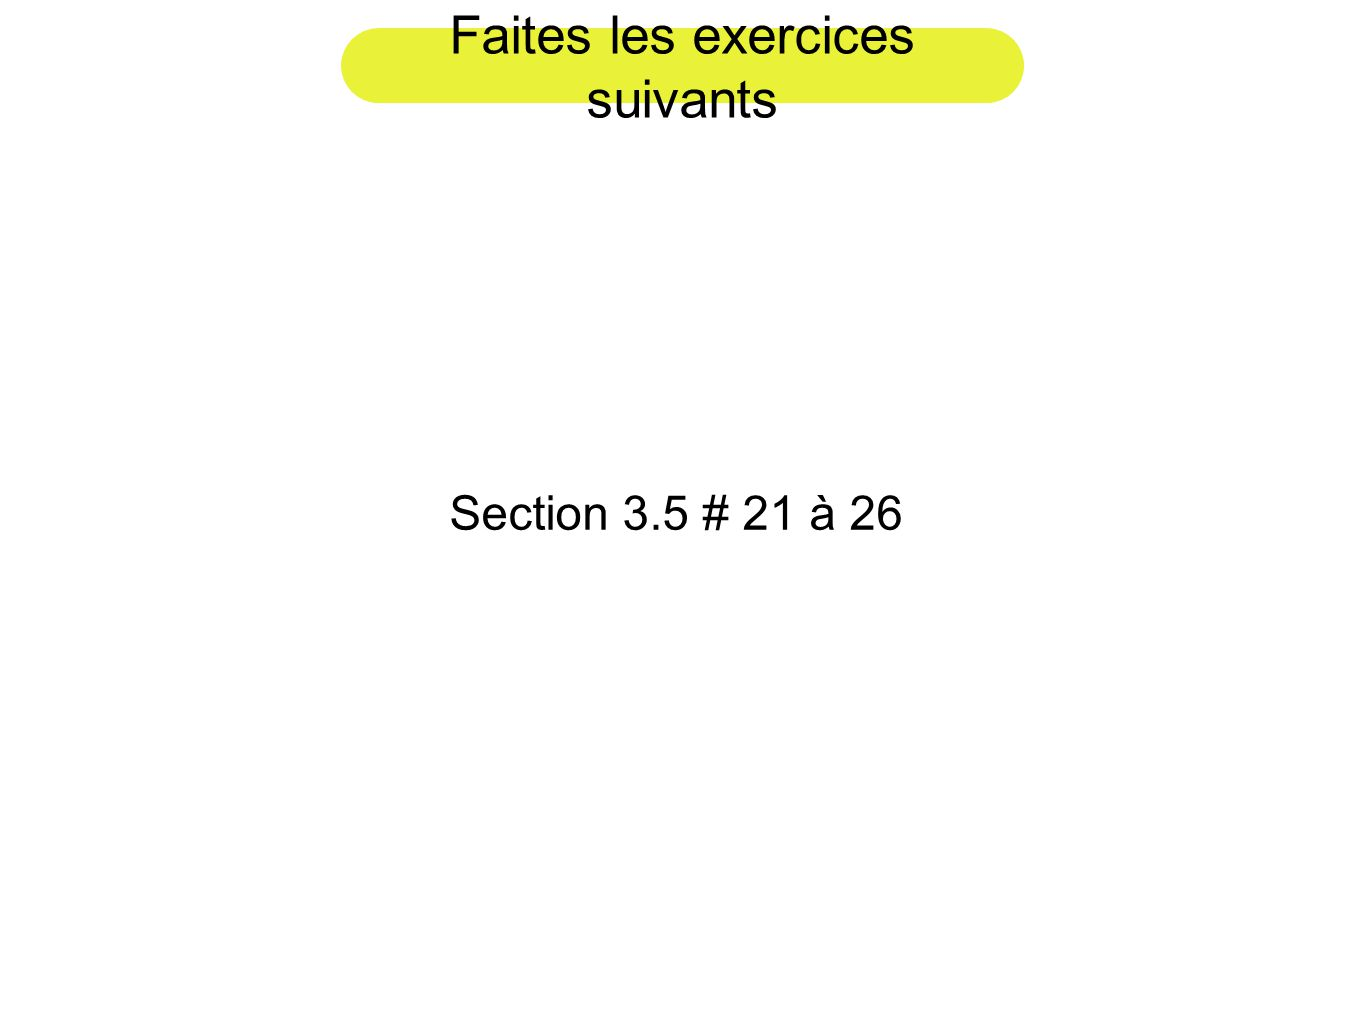 Faites les exercices suivants Section 3.5 # 21 à 26